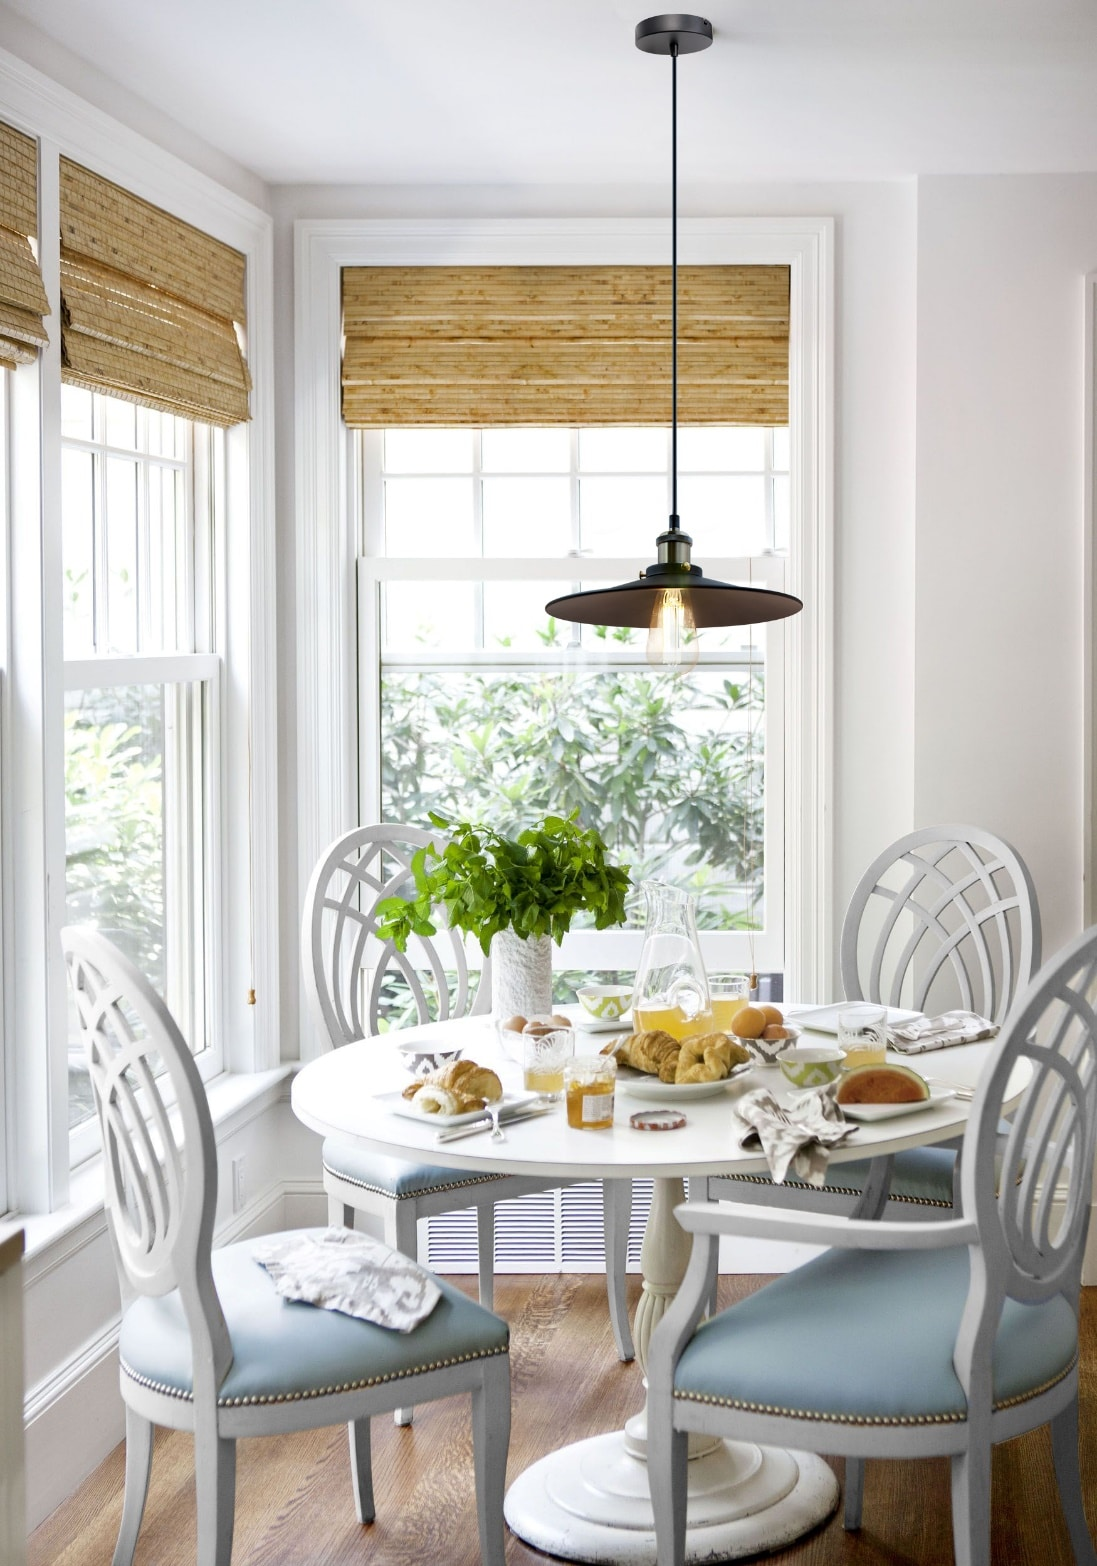 C:\Users\Administrator\Documents\Tencent Files\1754525188\FileRecv\eye-catching-dining-room-breakfast-nooks-on-30-nook-ideas-kitchen-furniture.jpg